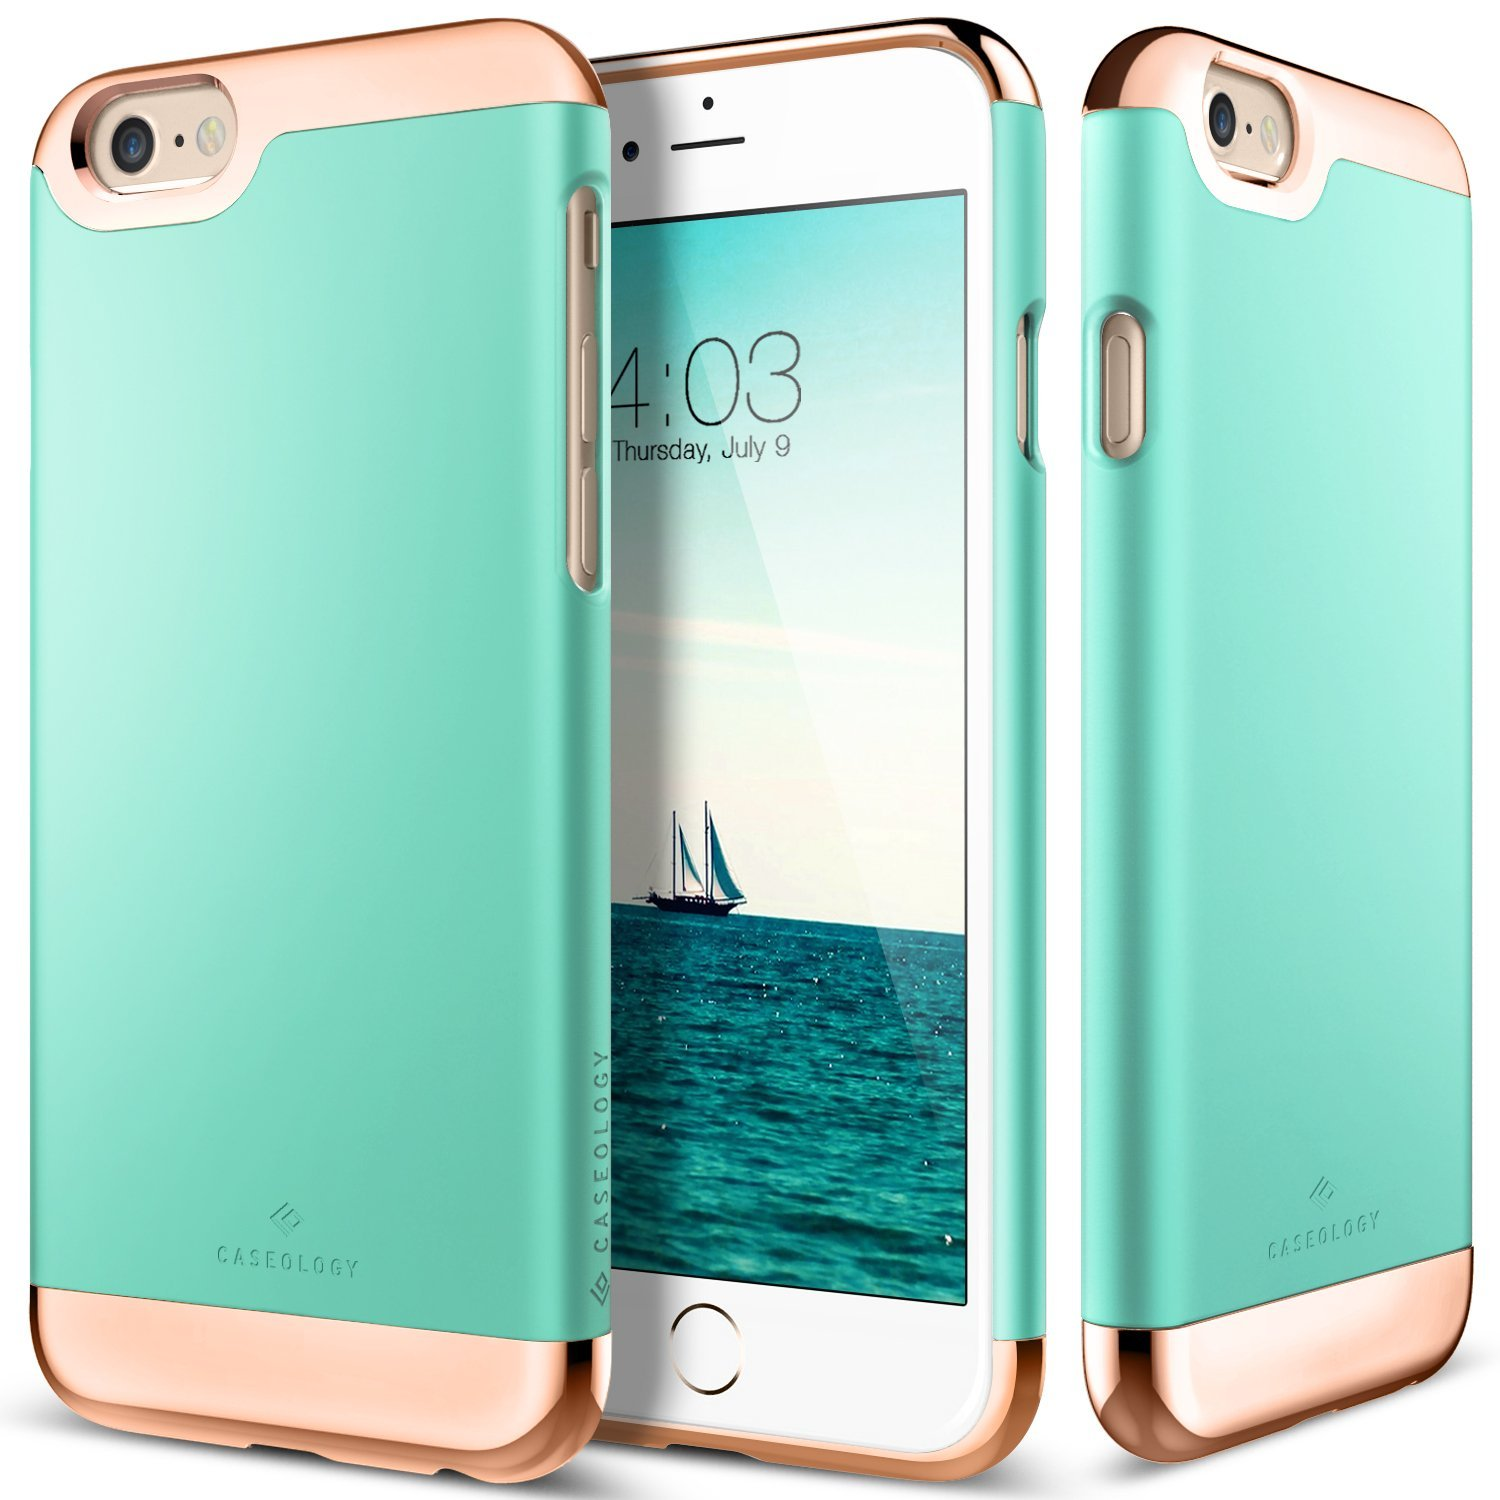 Apple iPhone 6/6S Case, Caseology [Savoy Series] Chrome / Microfiber Slider Case [Turquoise Mint] [Premium Rose Gold]